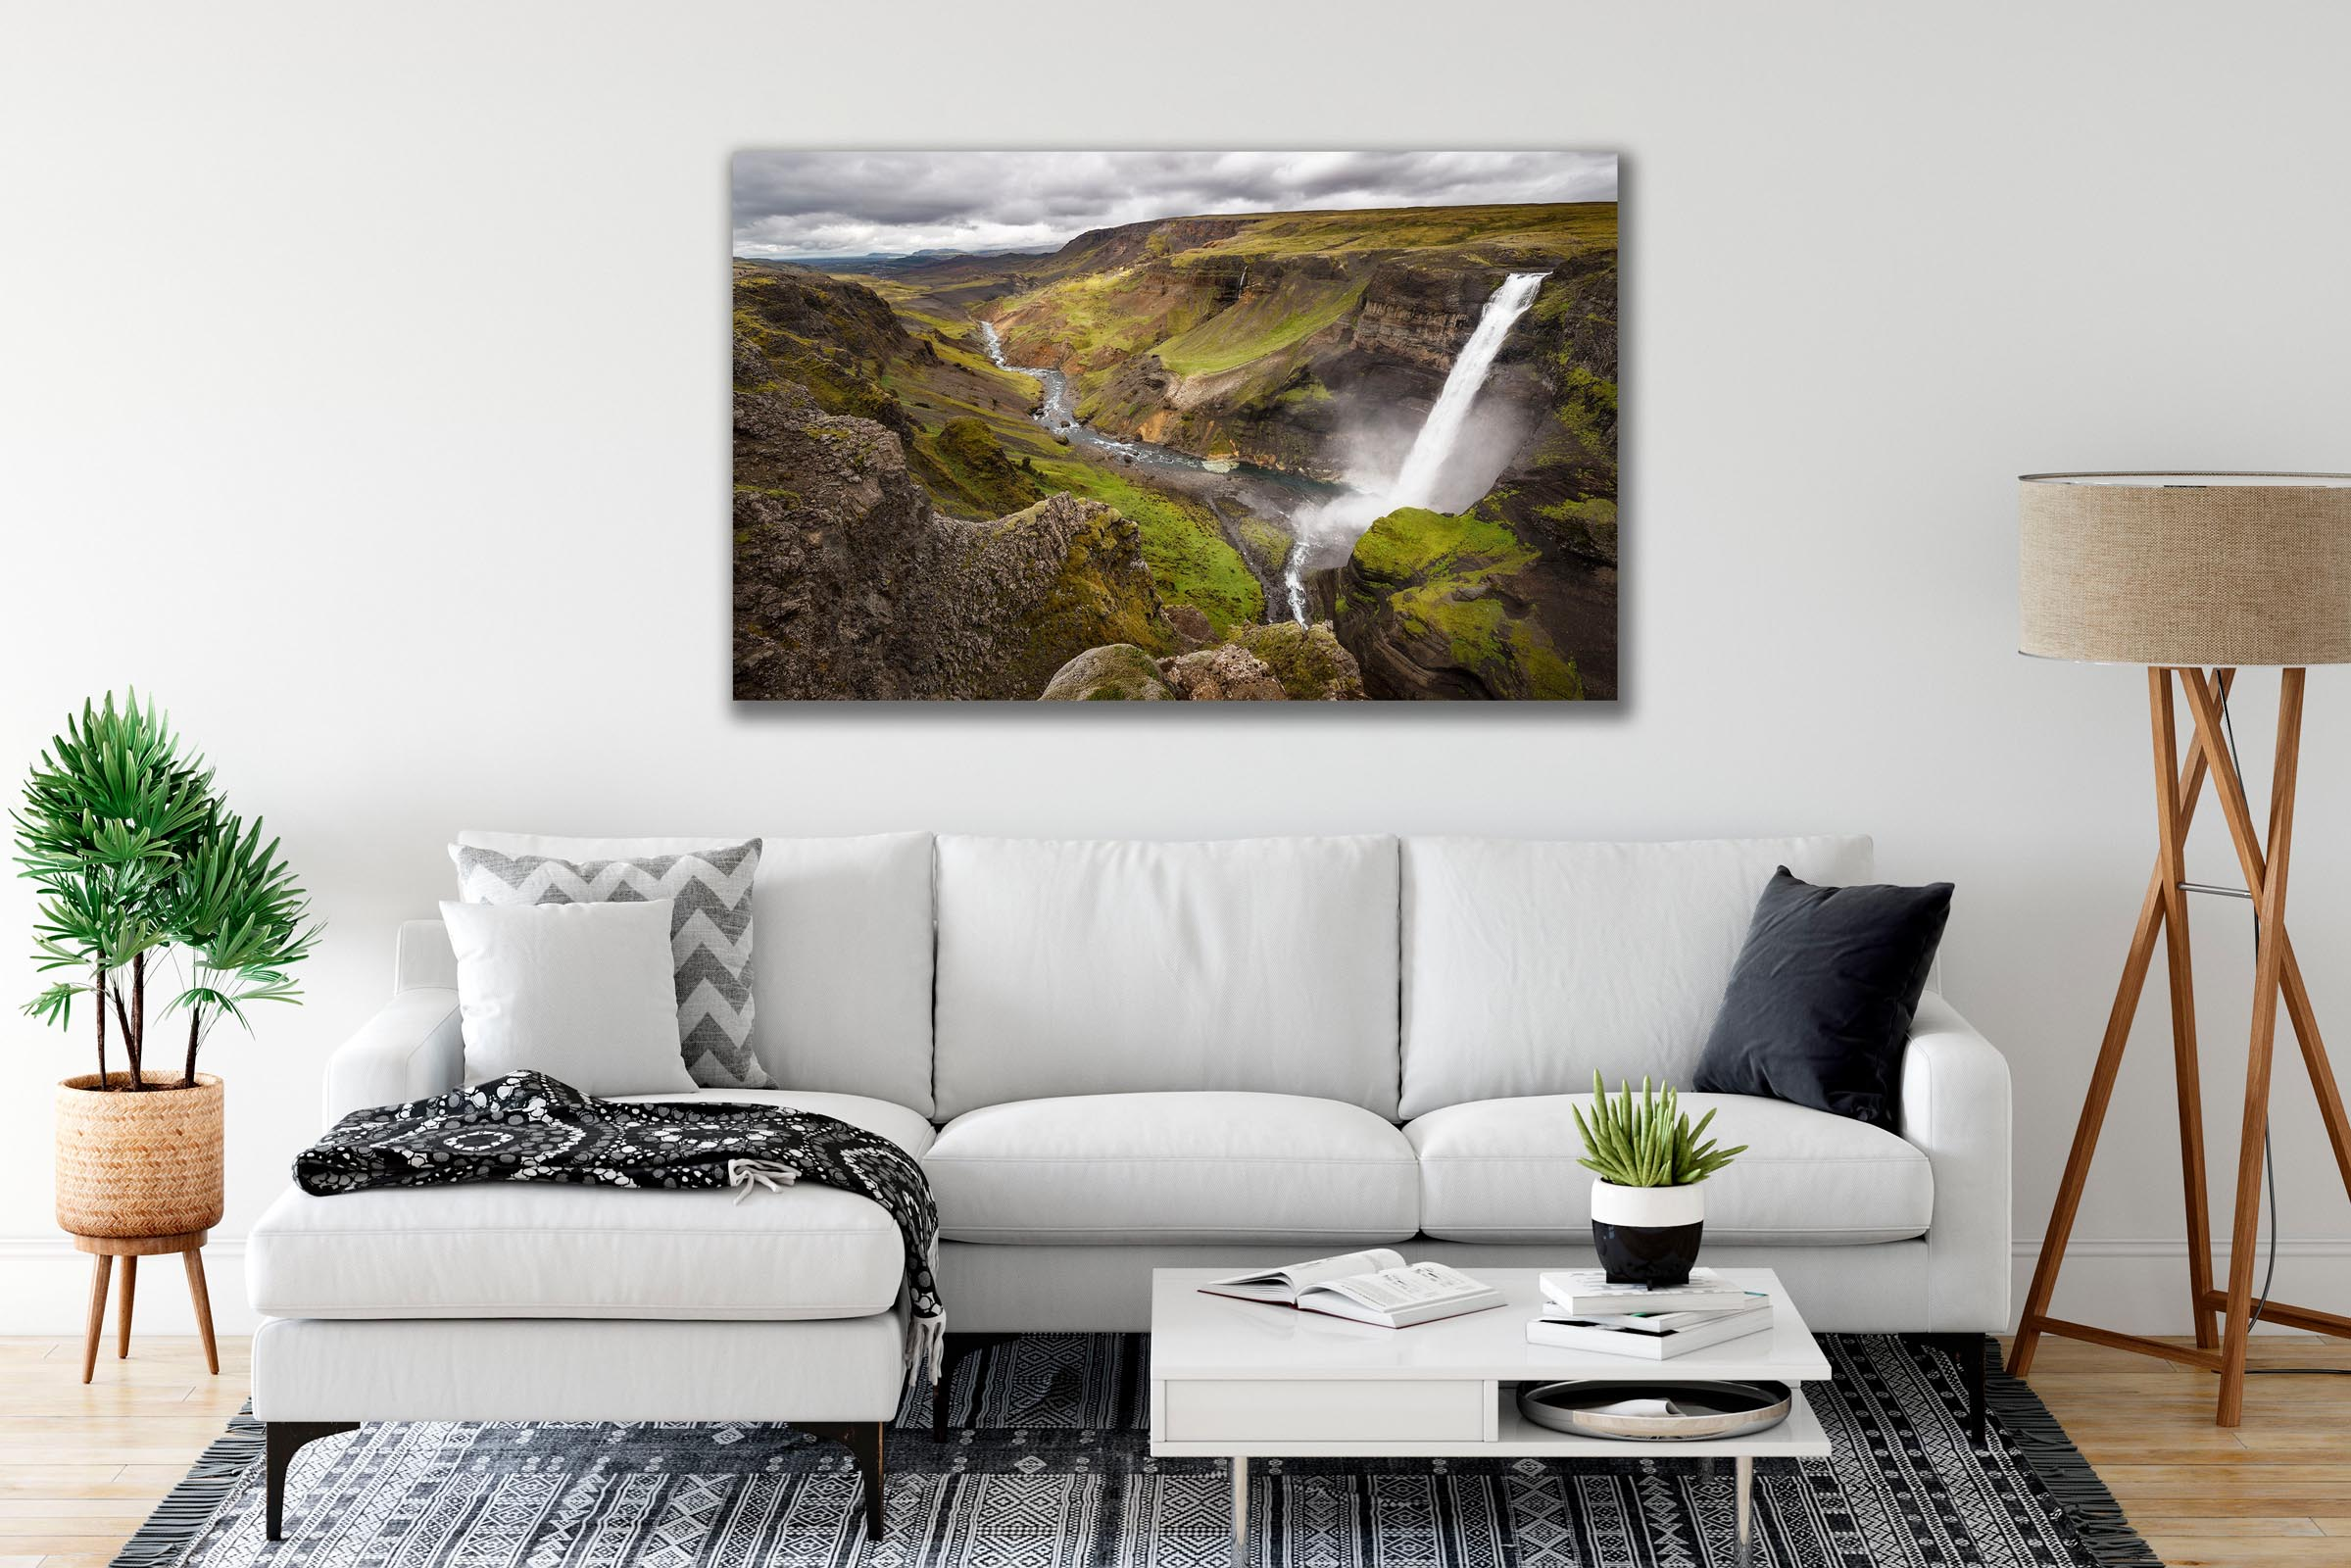 Wall art of Haifoss Waterfall in Highlands, Iceland by Brent Goldman Photography